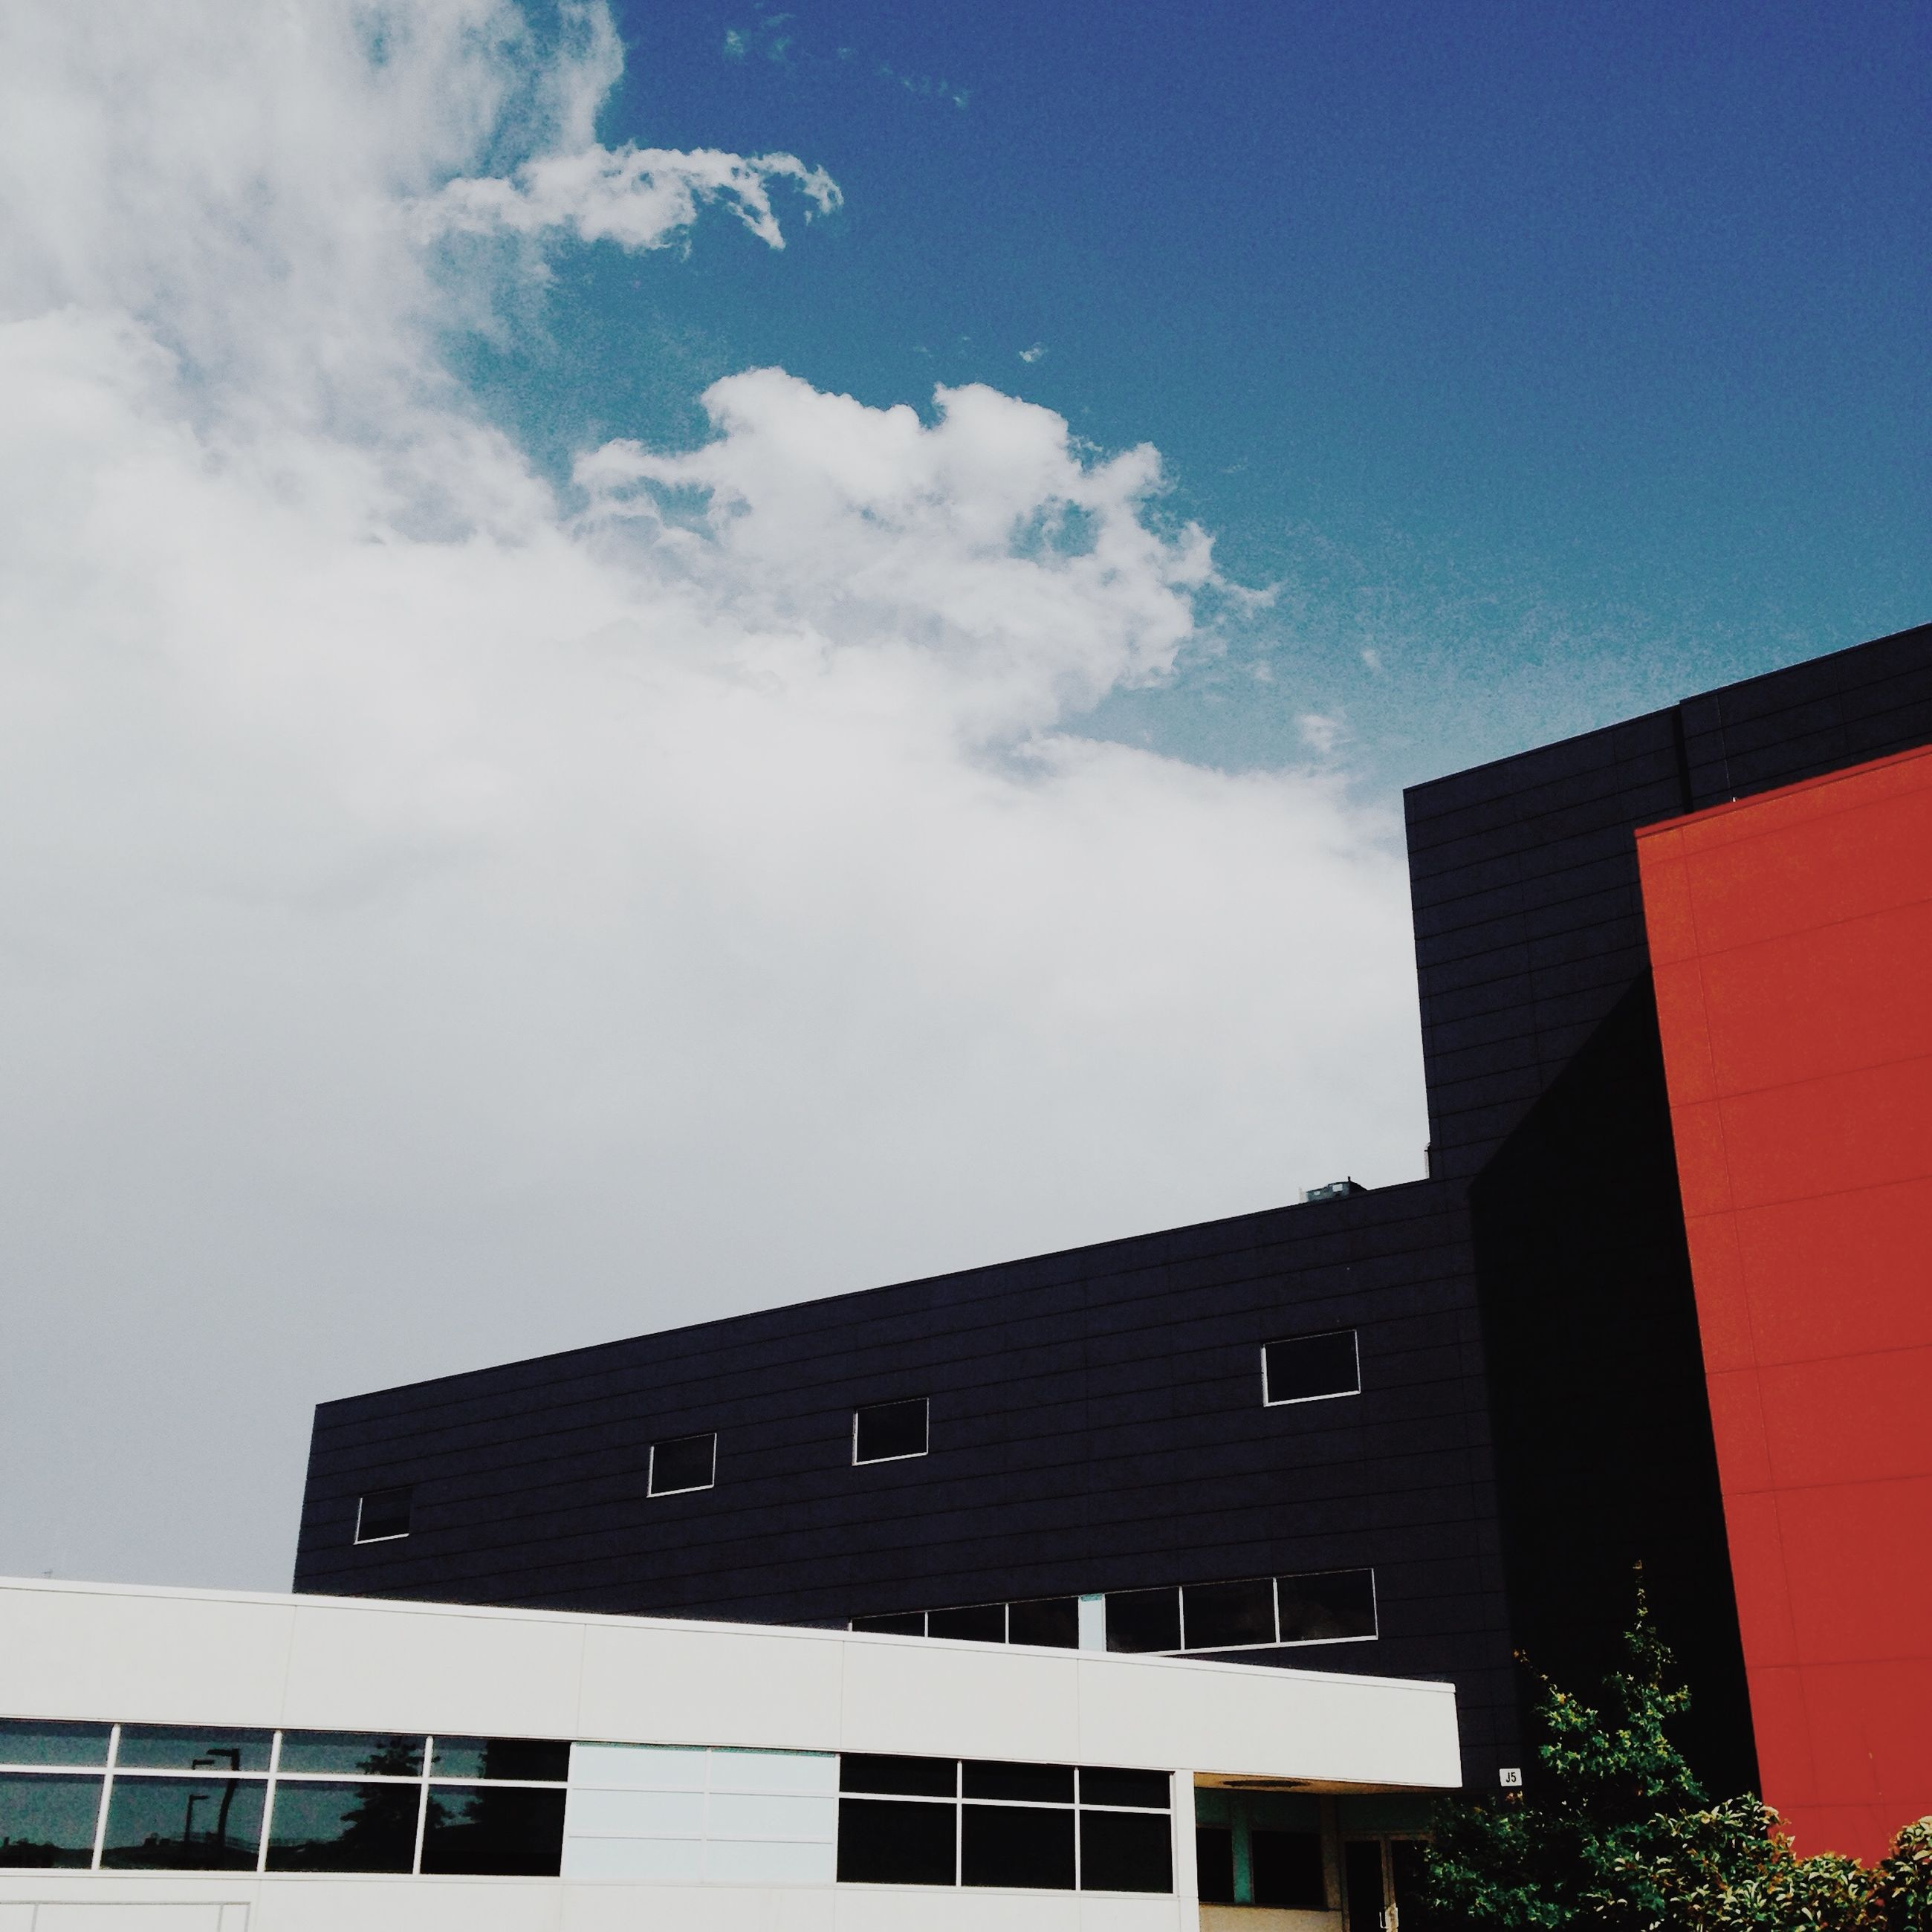 building exterior, architecture, built structure, low angle view, sky, residential structure, residential building, window, building, house, cloud - sky, city, high section, outdoors, day, no people, cloud, exterior, blue, cloudy